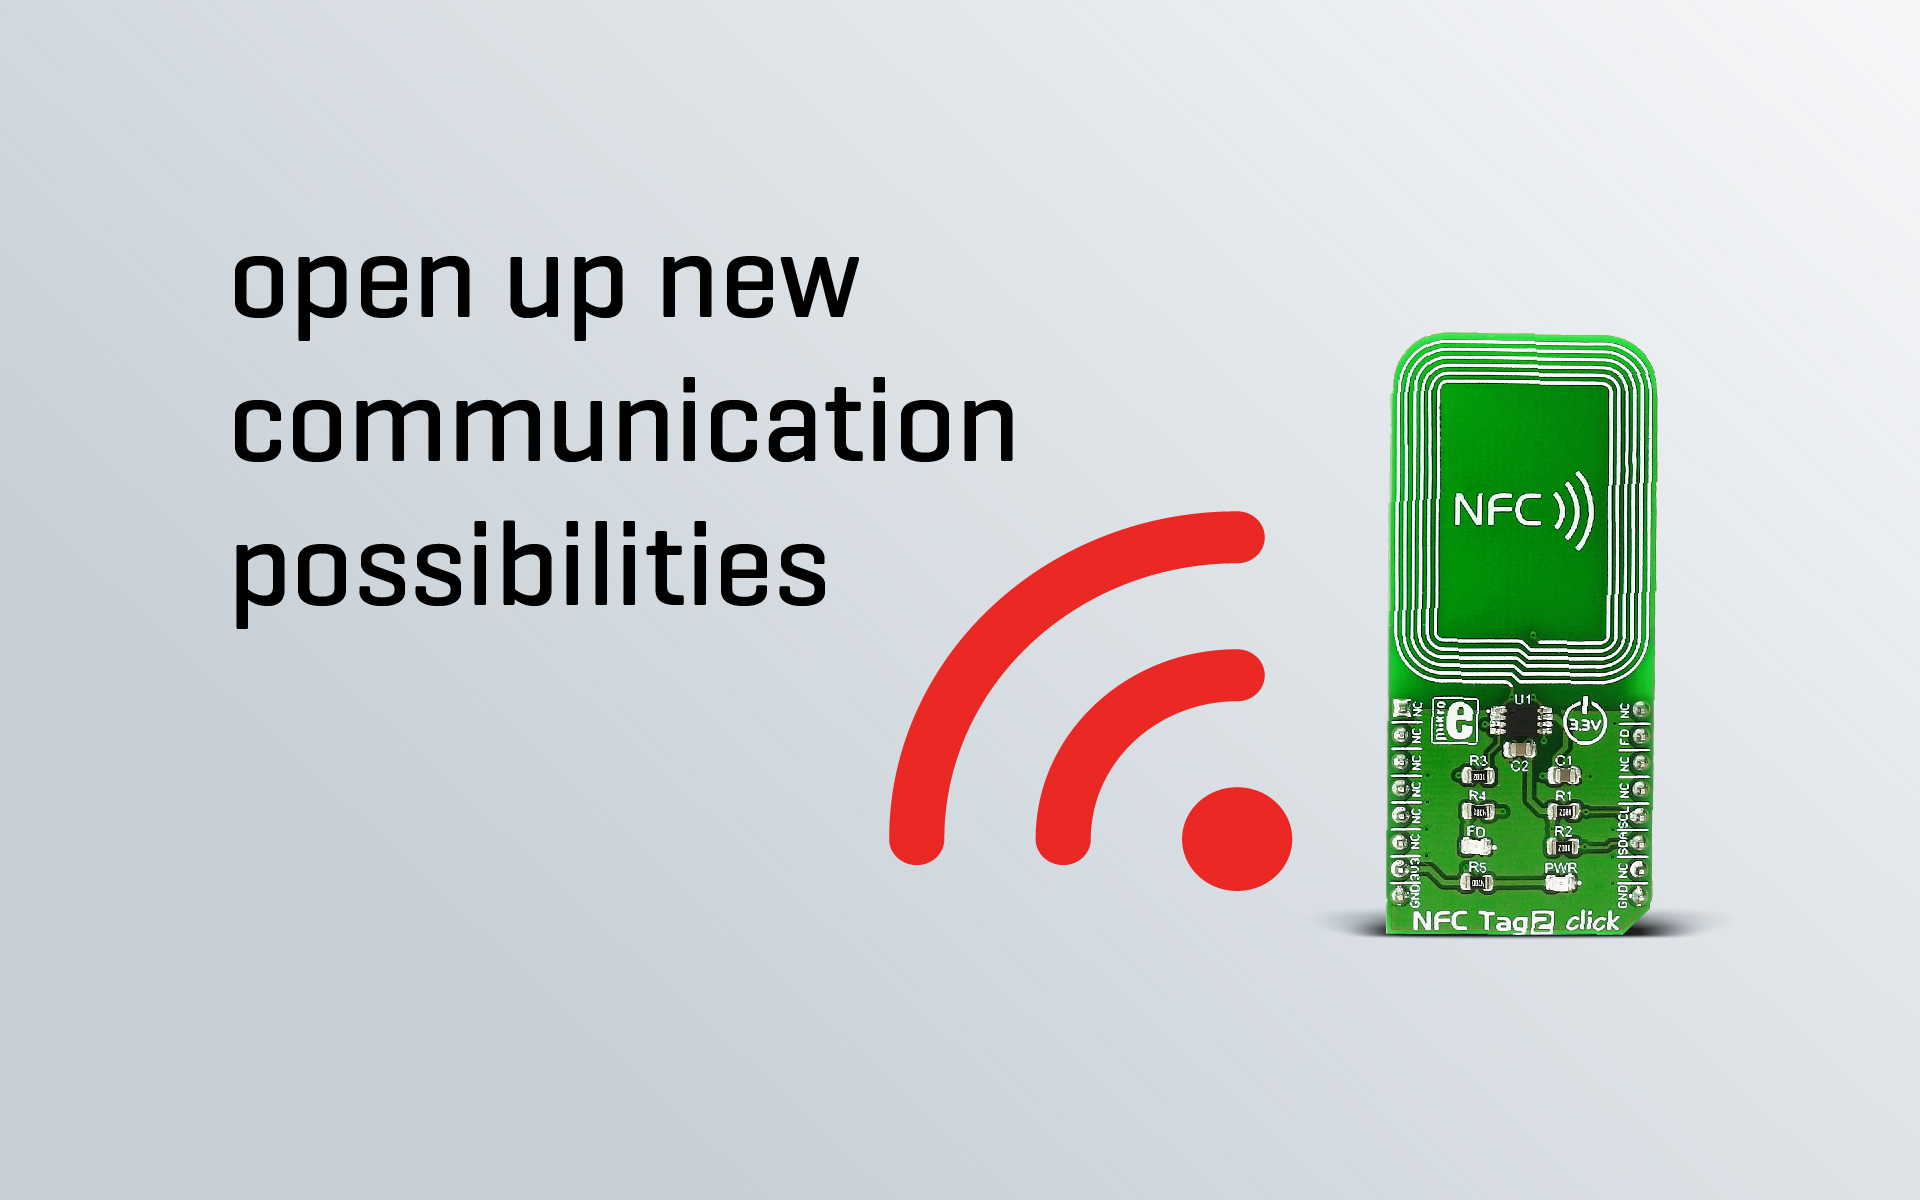 NFC Tag 2 click - no need for a battery